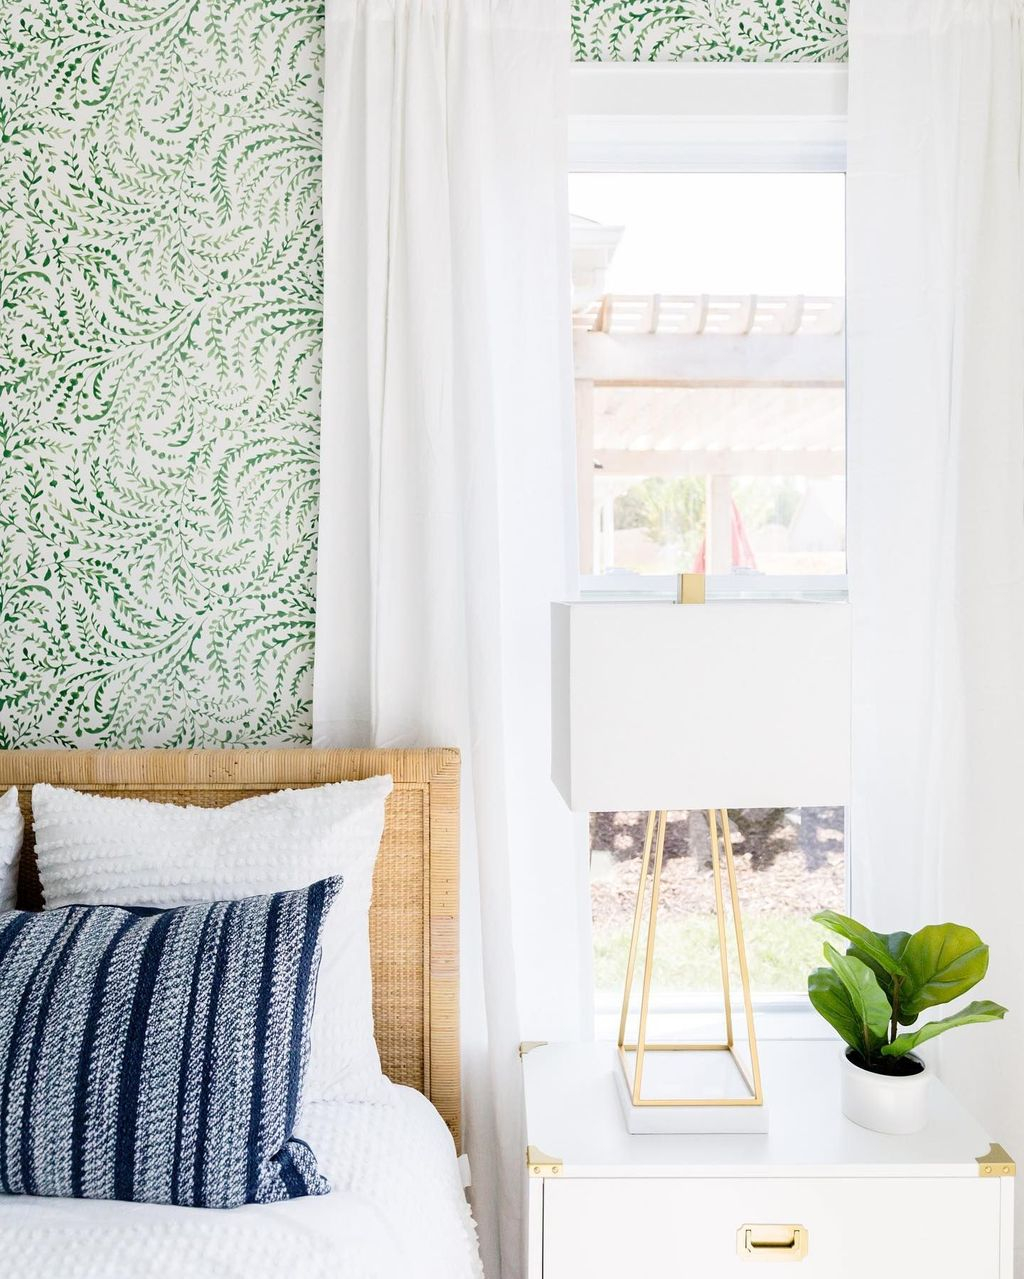 Best Bedroom Wallpaper Decor Ideas That Suitable For Your Family 36